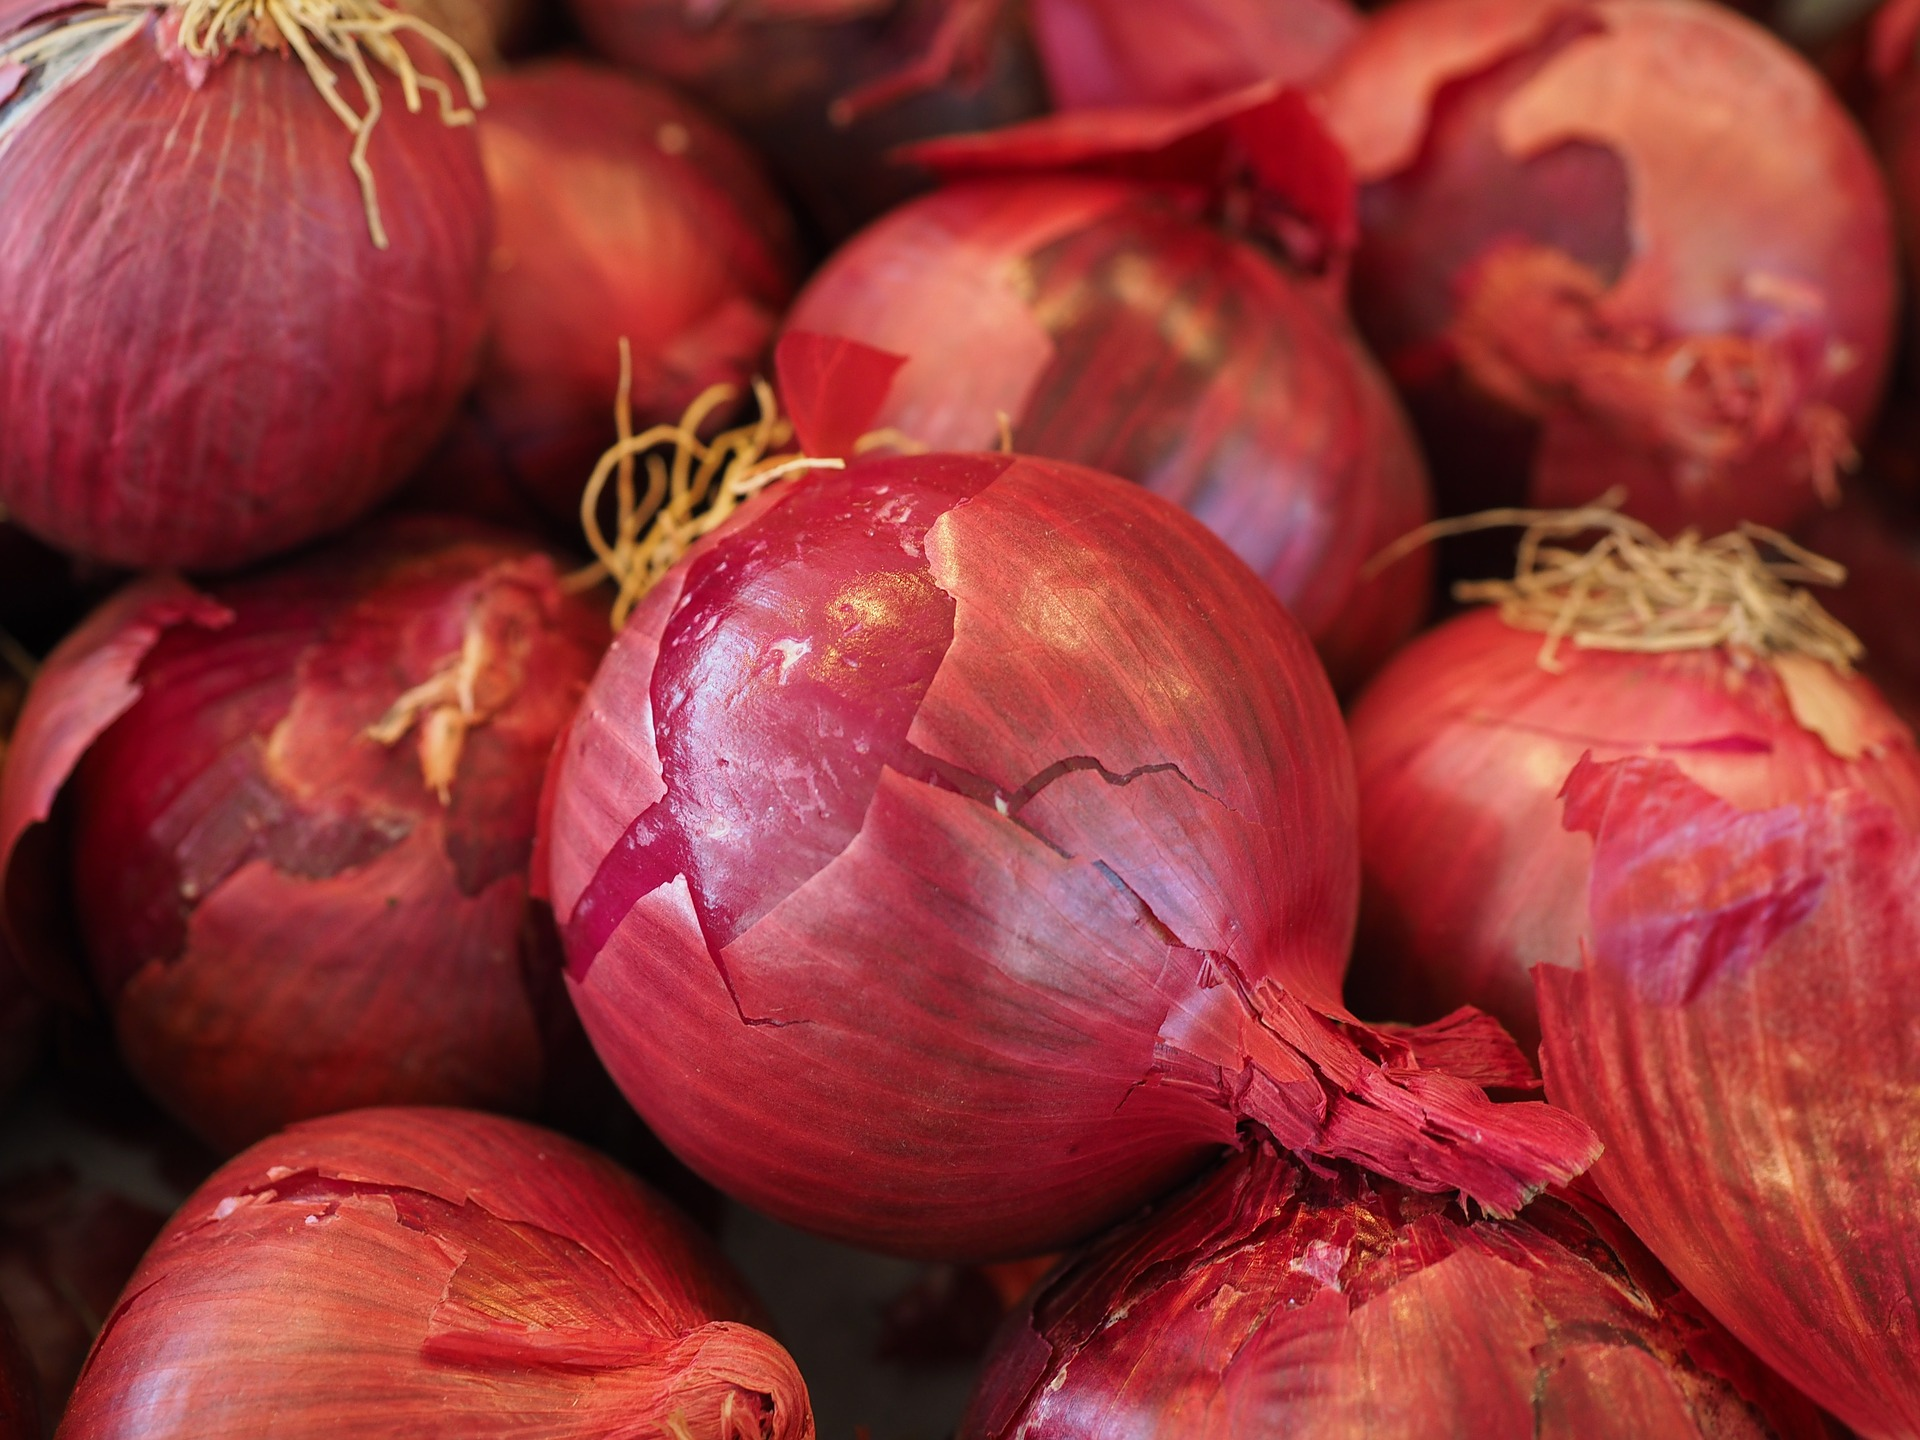 red-onions-vegetables-499066_1920.jpg